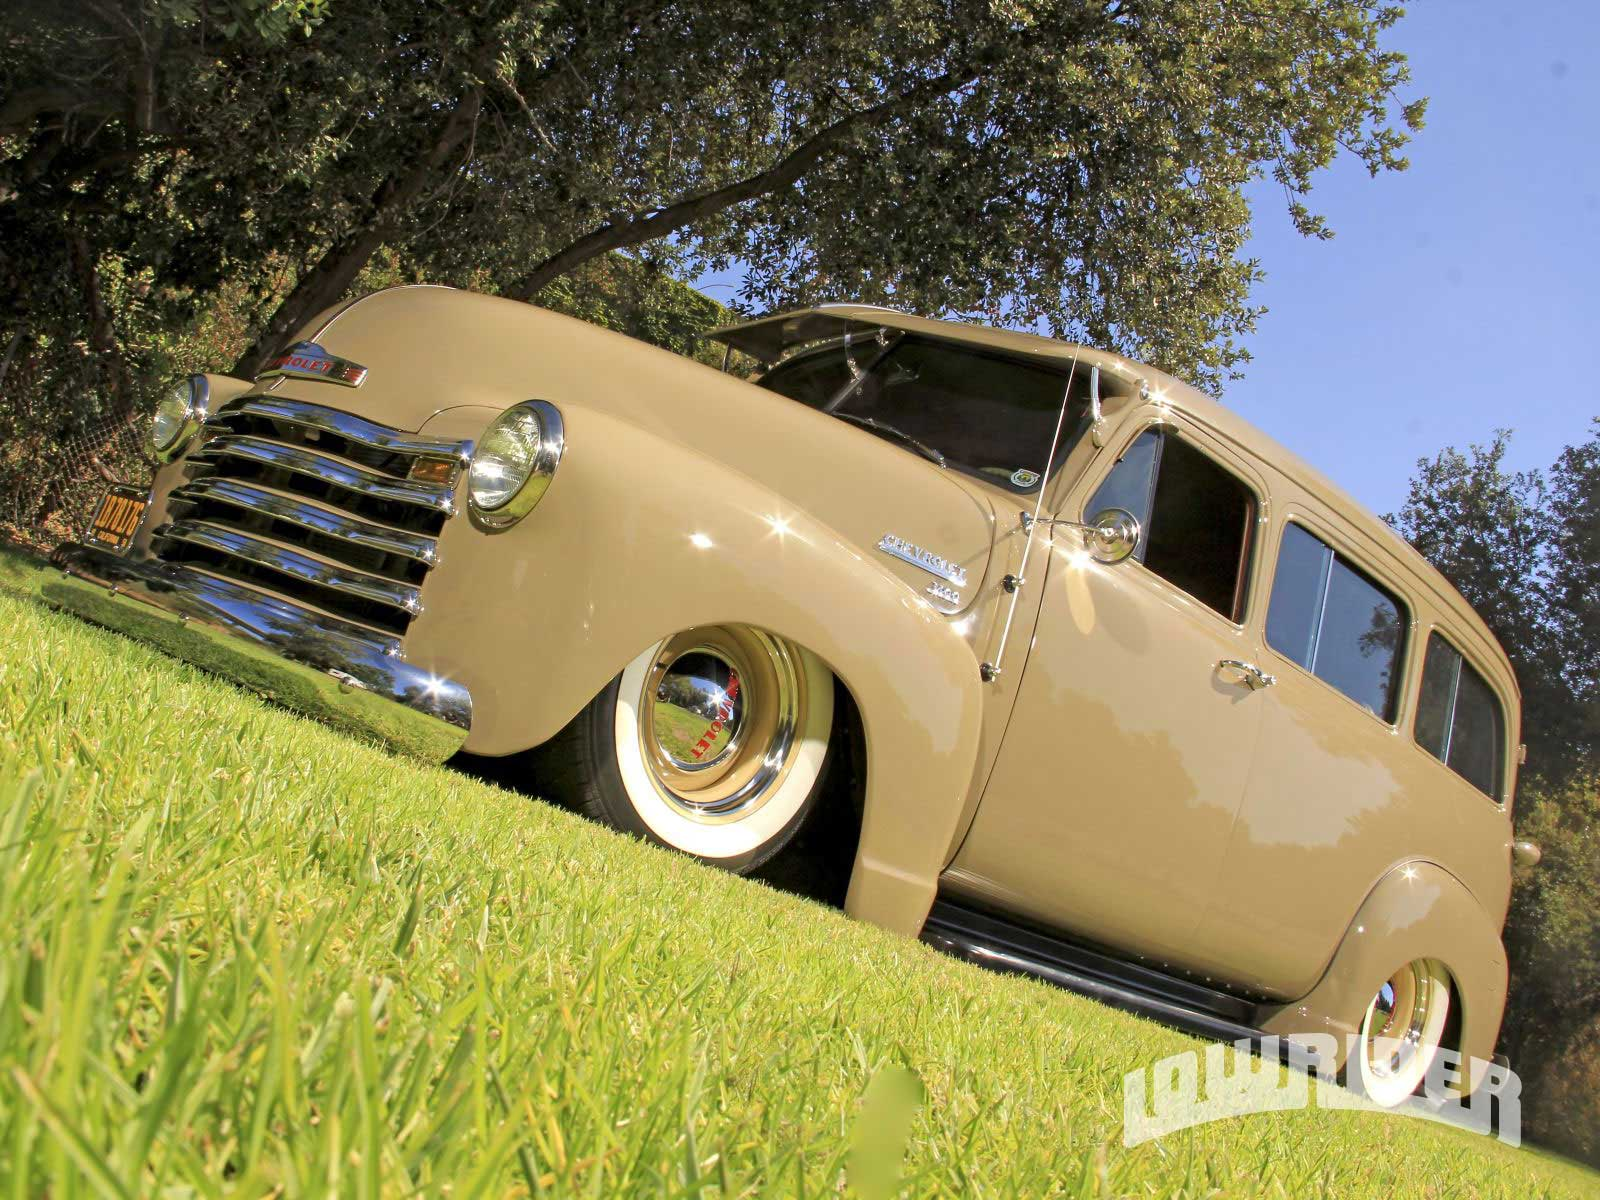 03-o-1951-chevrolet-suburban-side-view